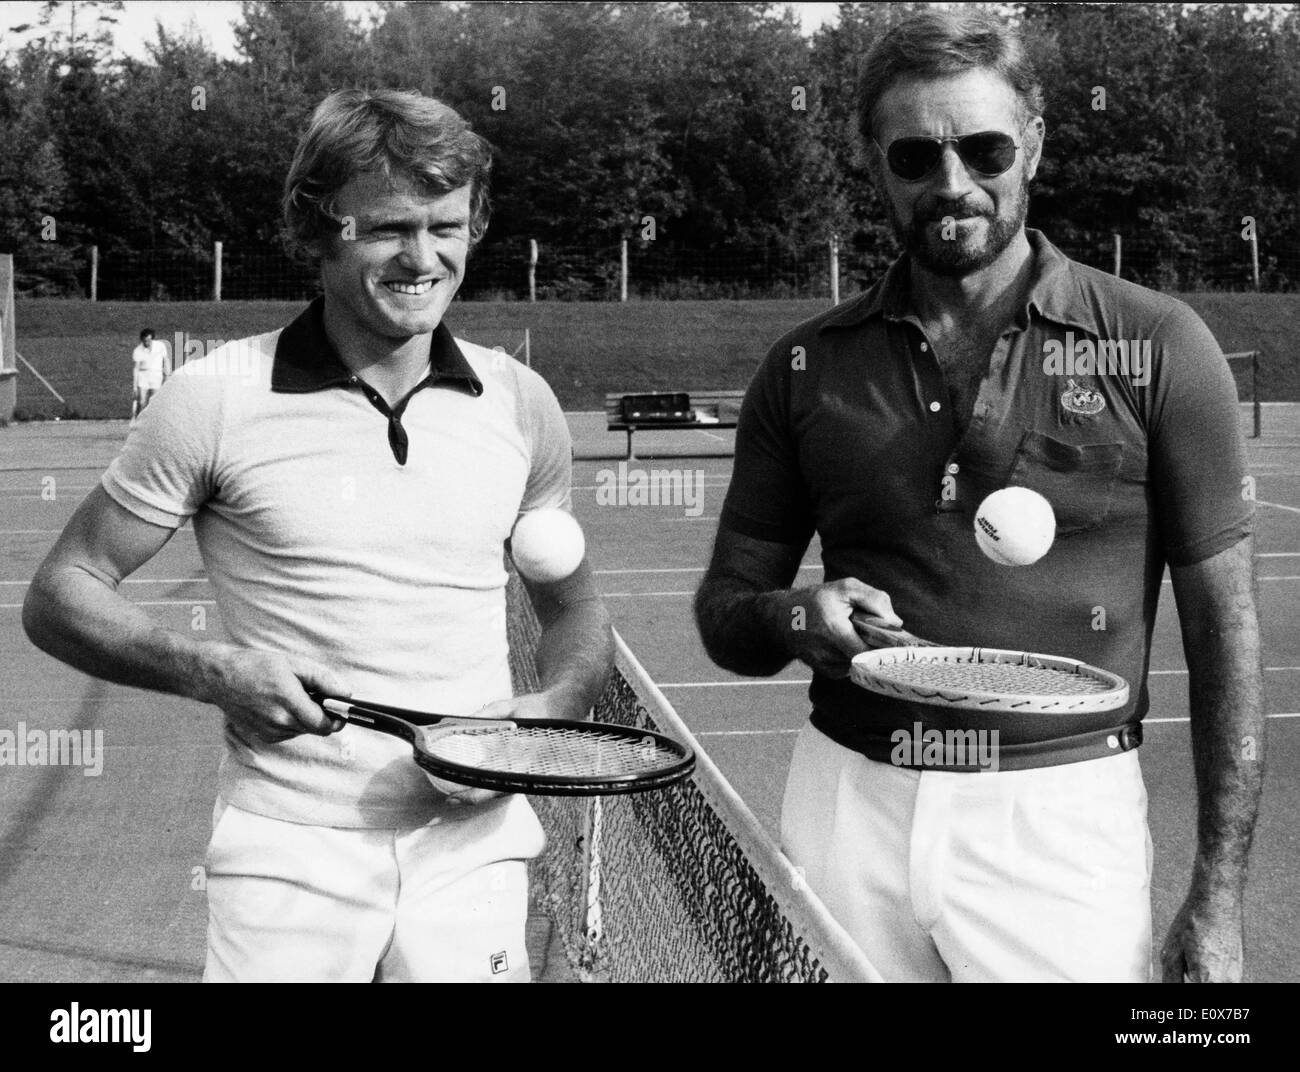 Actor Charlton Heston playing tennis with Sepp Maier Stock